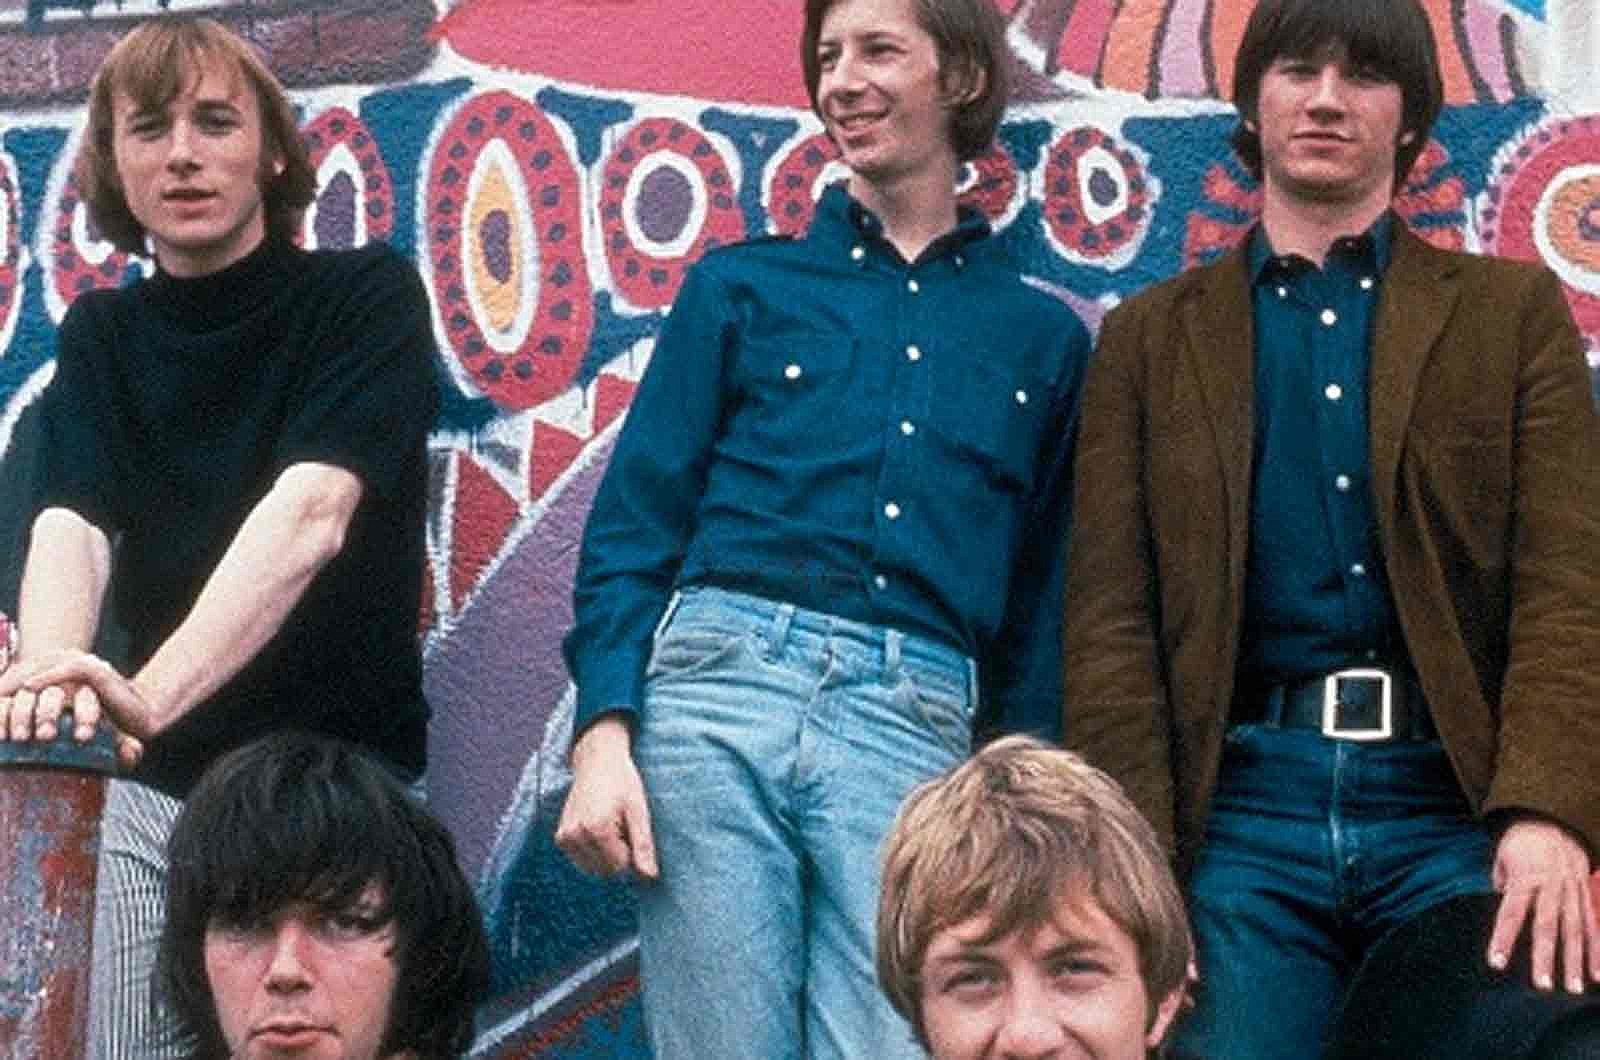 The Day Buffalo Springfield Played Their First Show